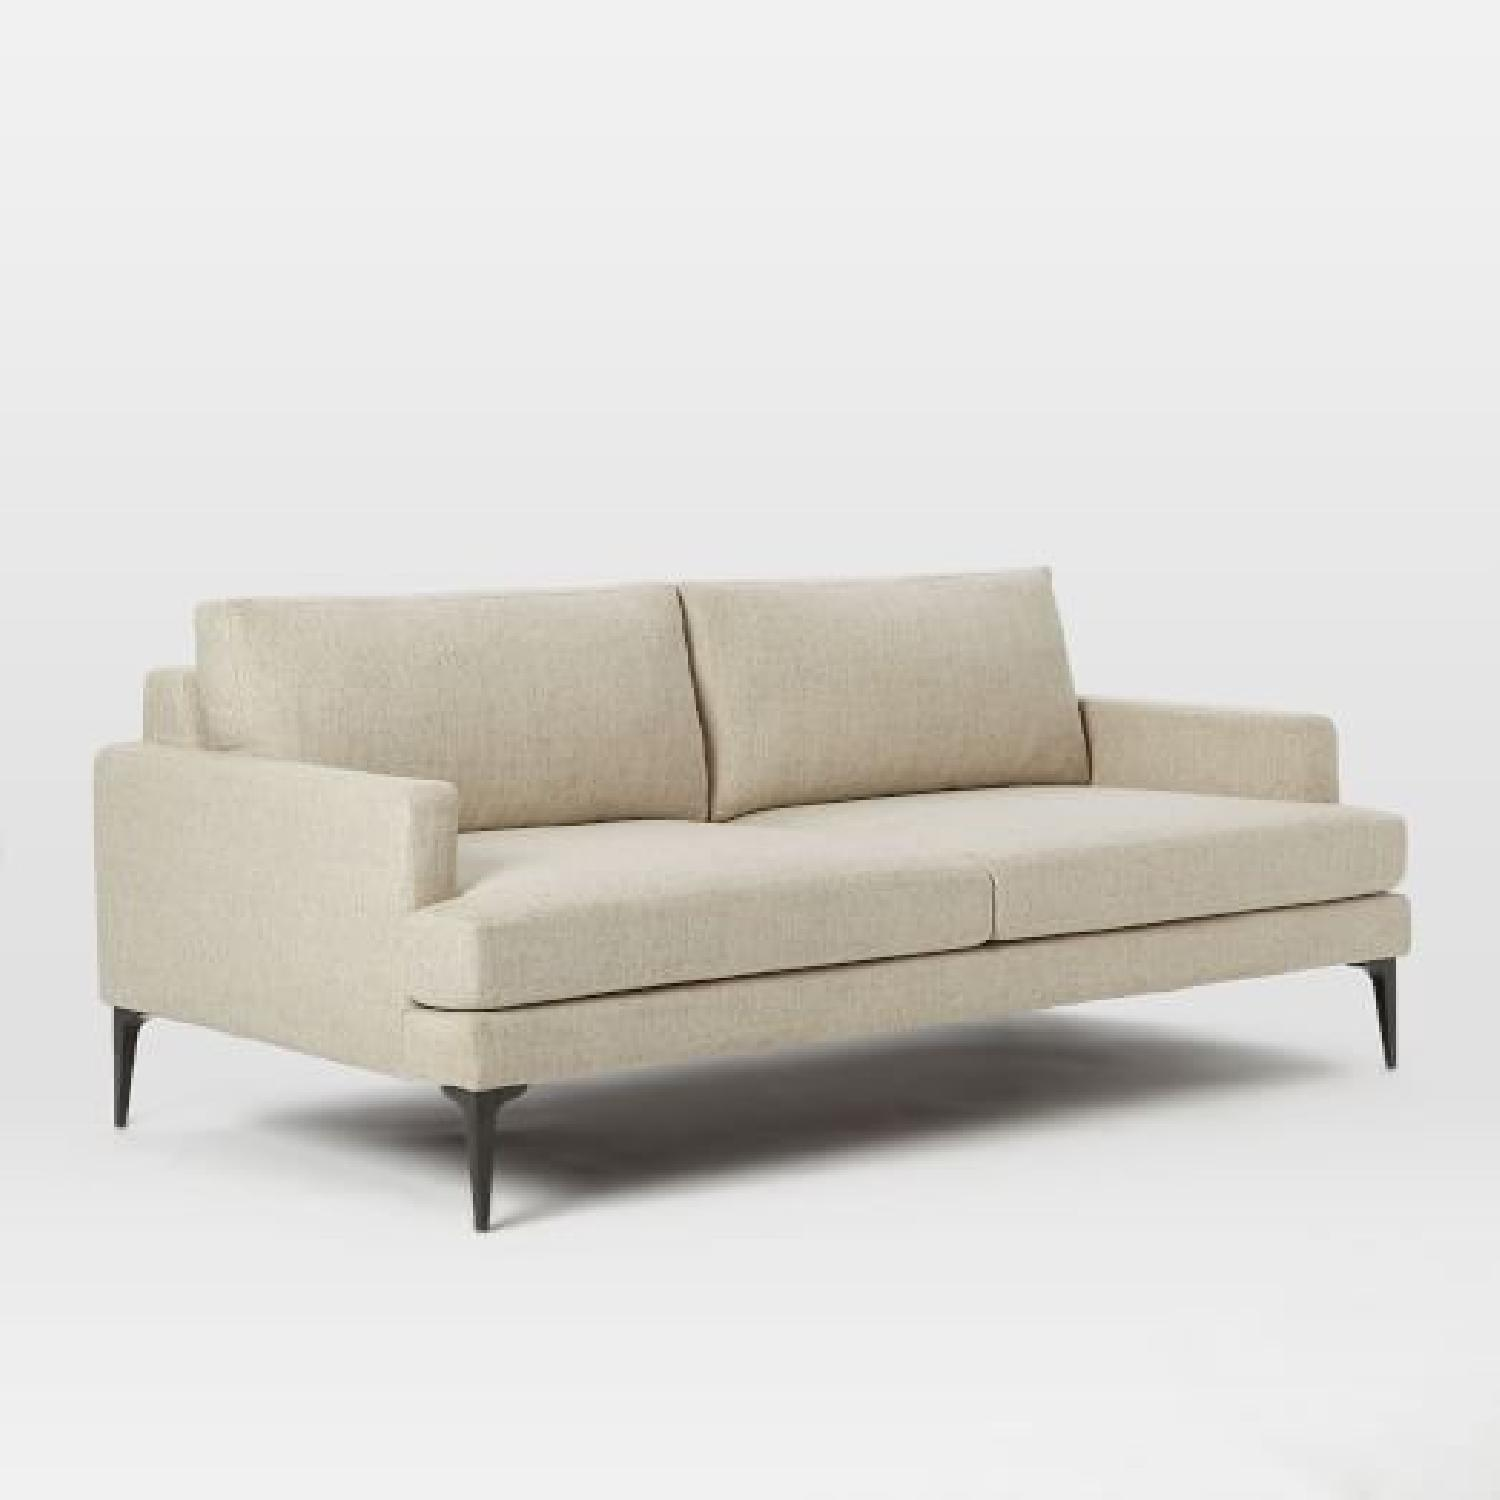 West Elm Andes Sofa & Bench-4